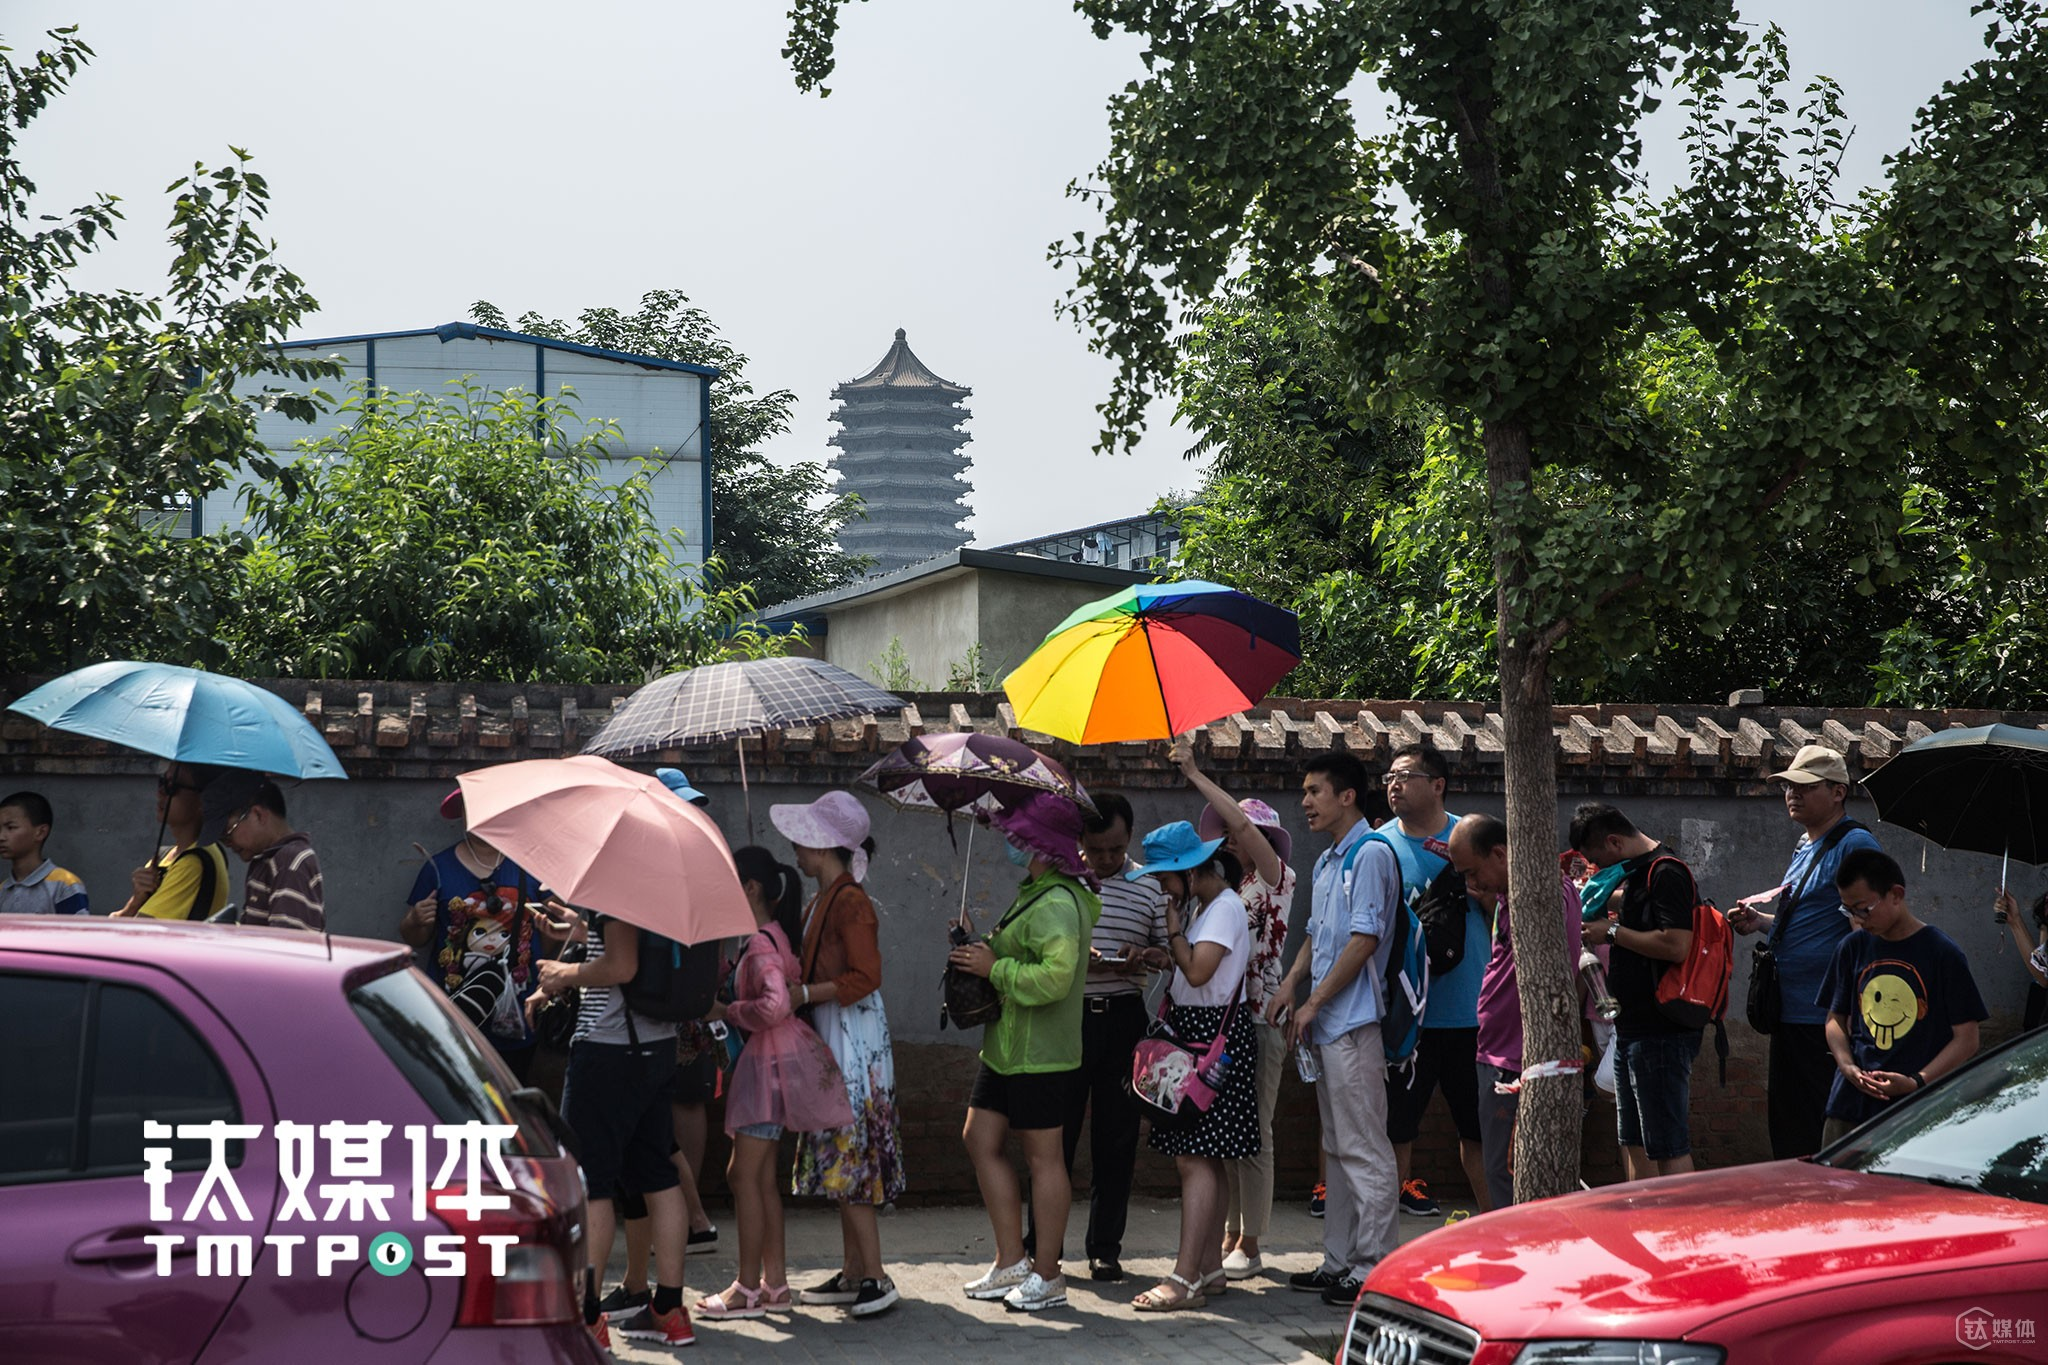 "Chinese parents and students (primary or high school) waited in queues to pay a visit to Peking University during the Summer Vacation. A huge refurbish plan has already begun: the 7.2-kilometer-long Zhongguan Village Avenue, with the East Gate of Peking University to the north and the Baishi Bridge South to the south, is going to be upgraded into ""A Street of Innovation"". All the 36 office buildings, 18 shopping malls, small-sized retailing markets as well as 8 electronics malls are going to be upgraded and refurbished. ""It's hard to see so huge scale of upgrading and refurbishing in this area due to the complex property right. For a long while, people find it hard to see any change on the avenue,"" a relevant personnel told TMTpost."